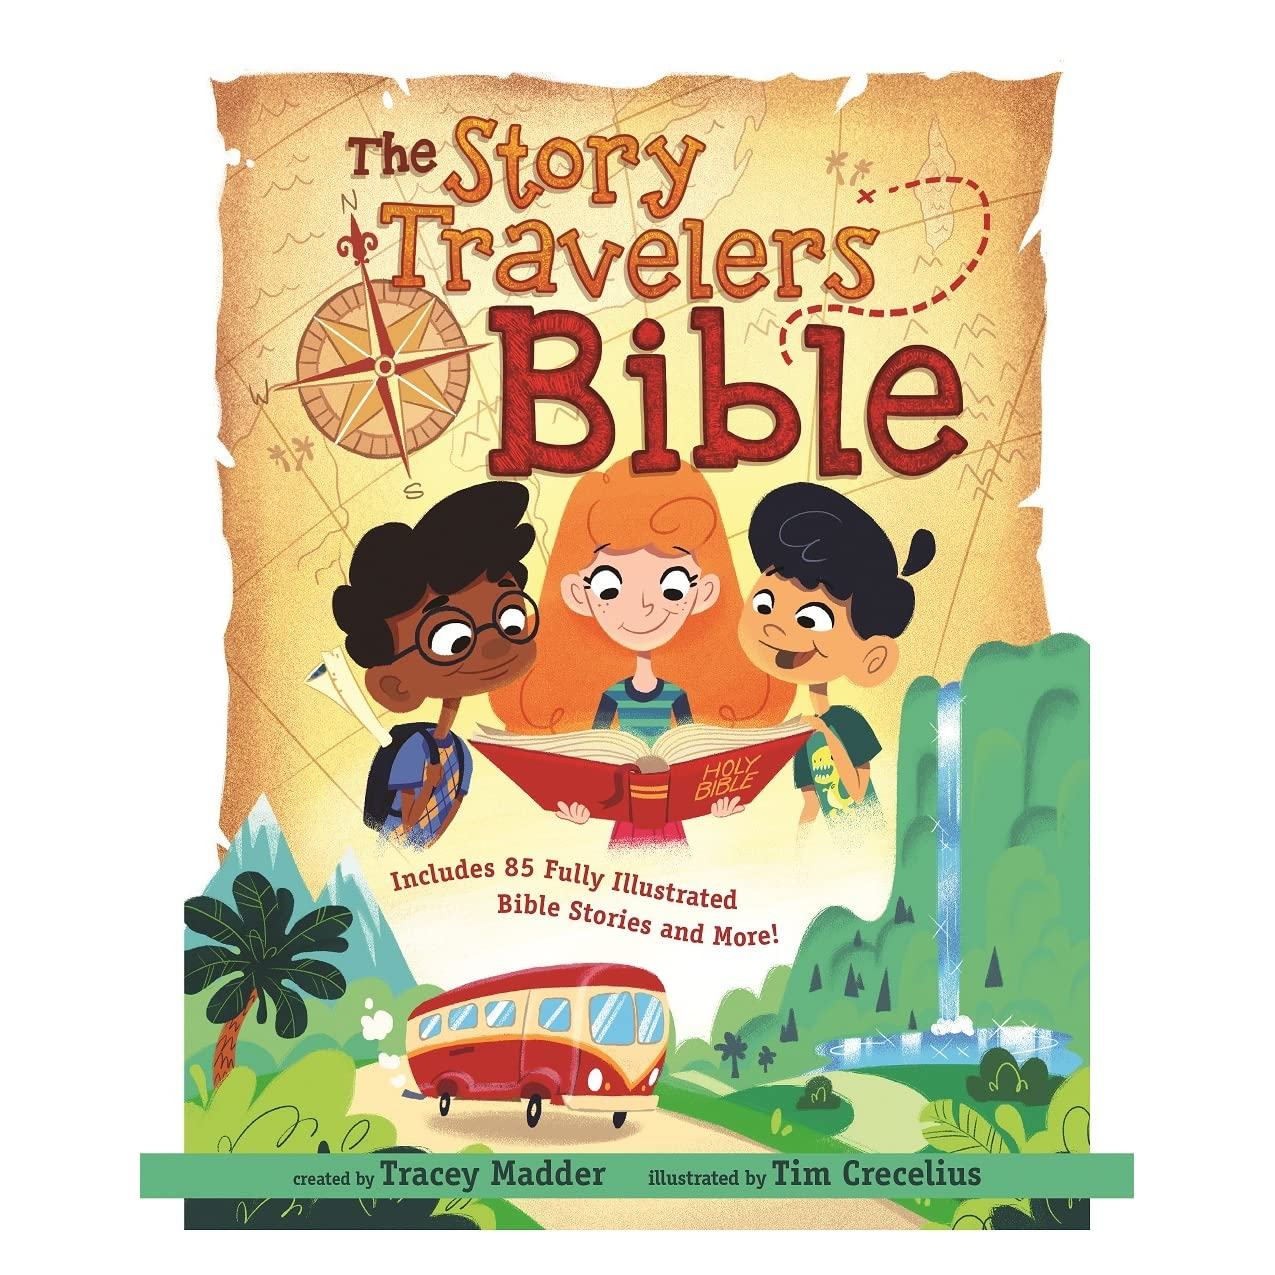 the story travelers bible by tracey madder